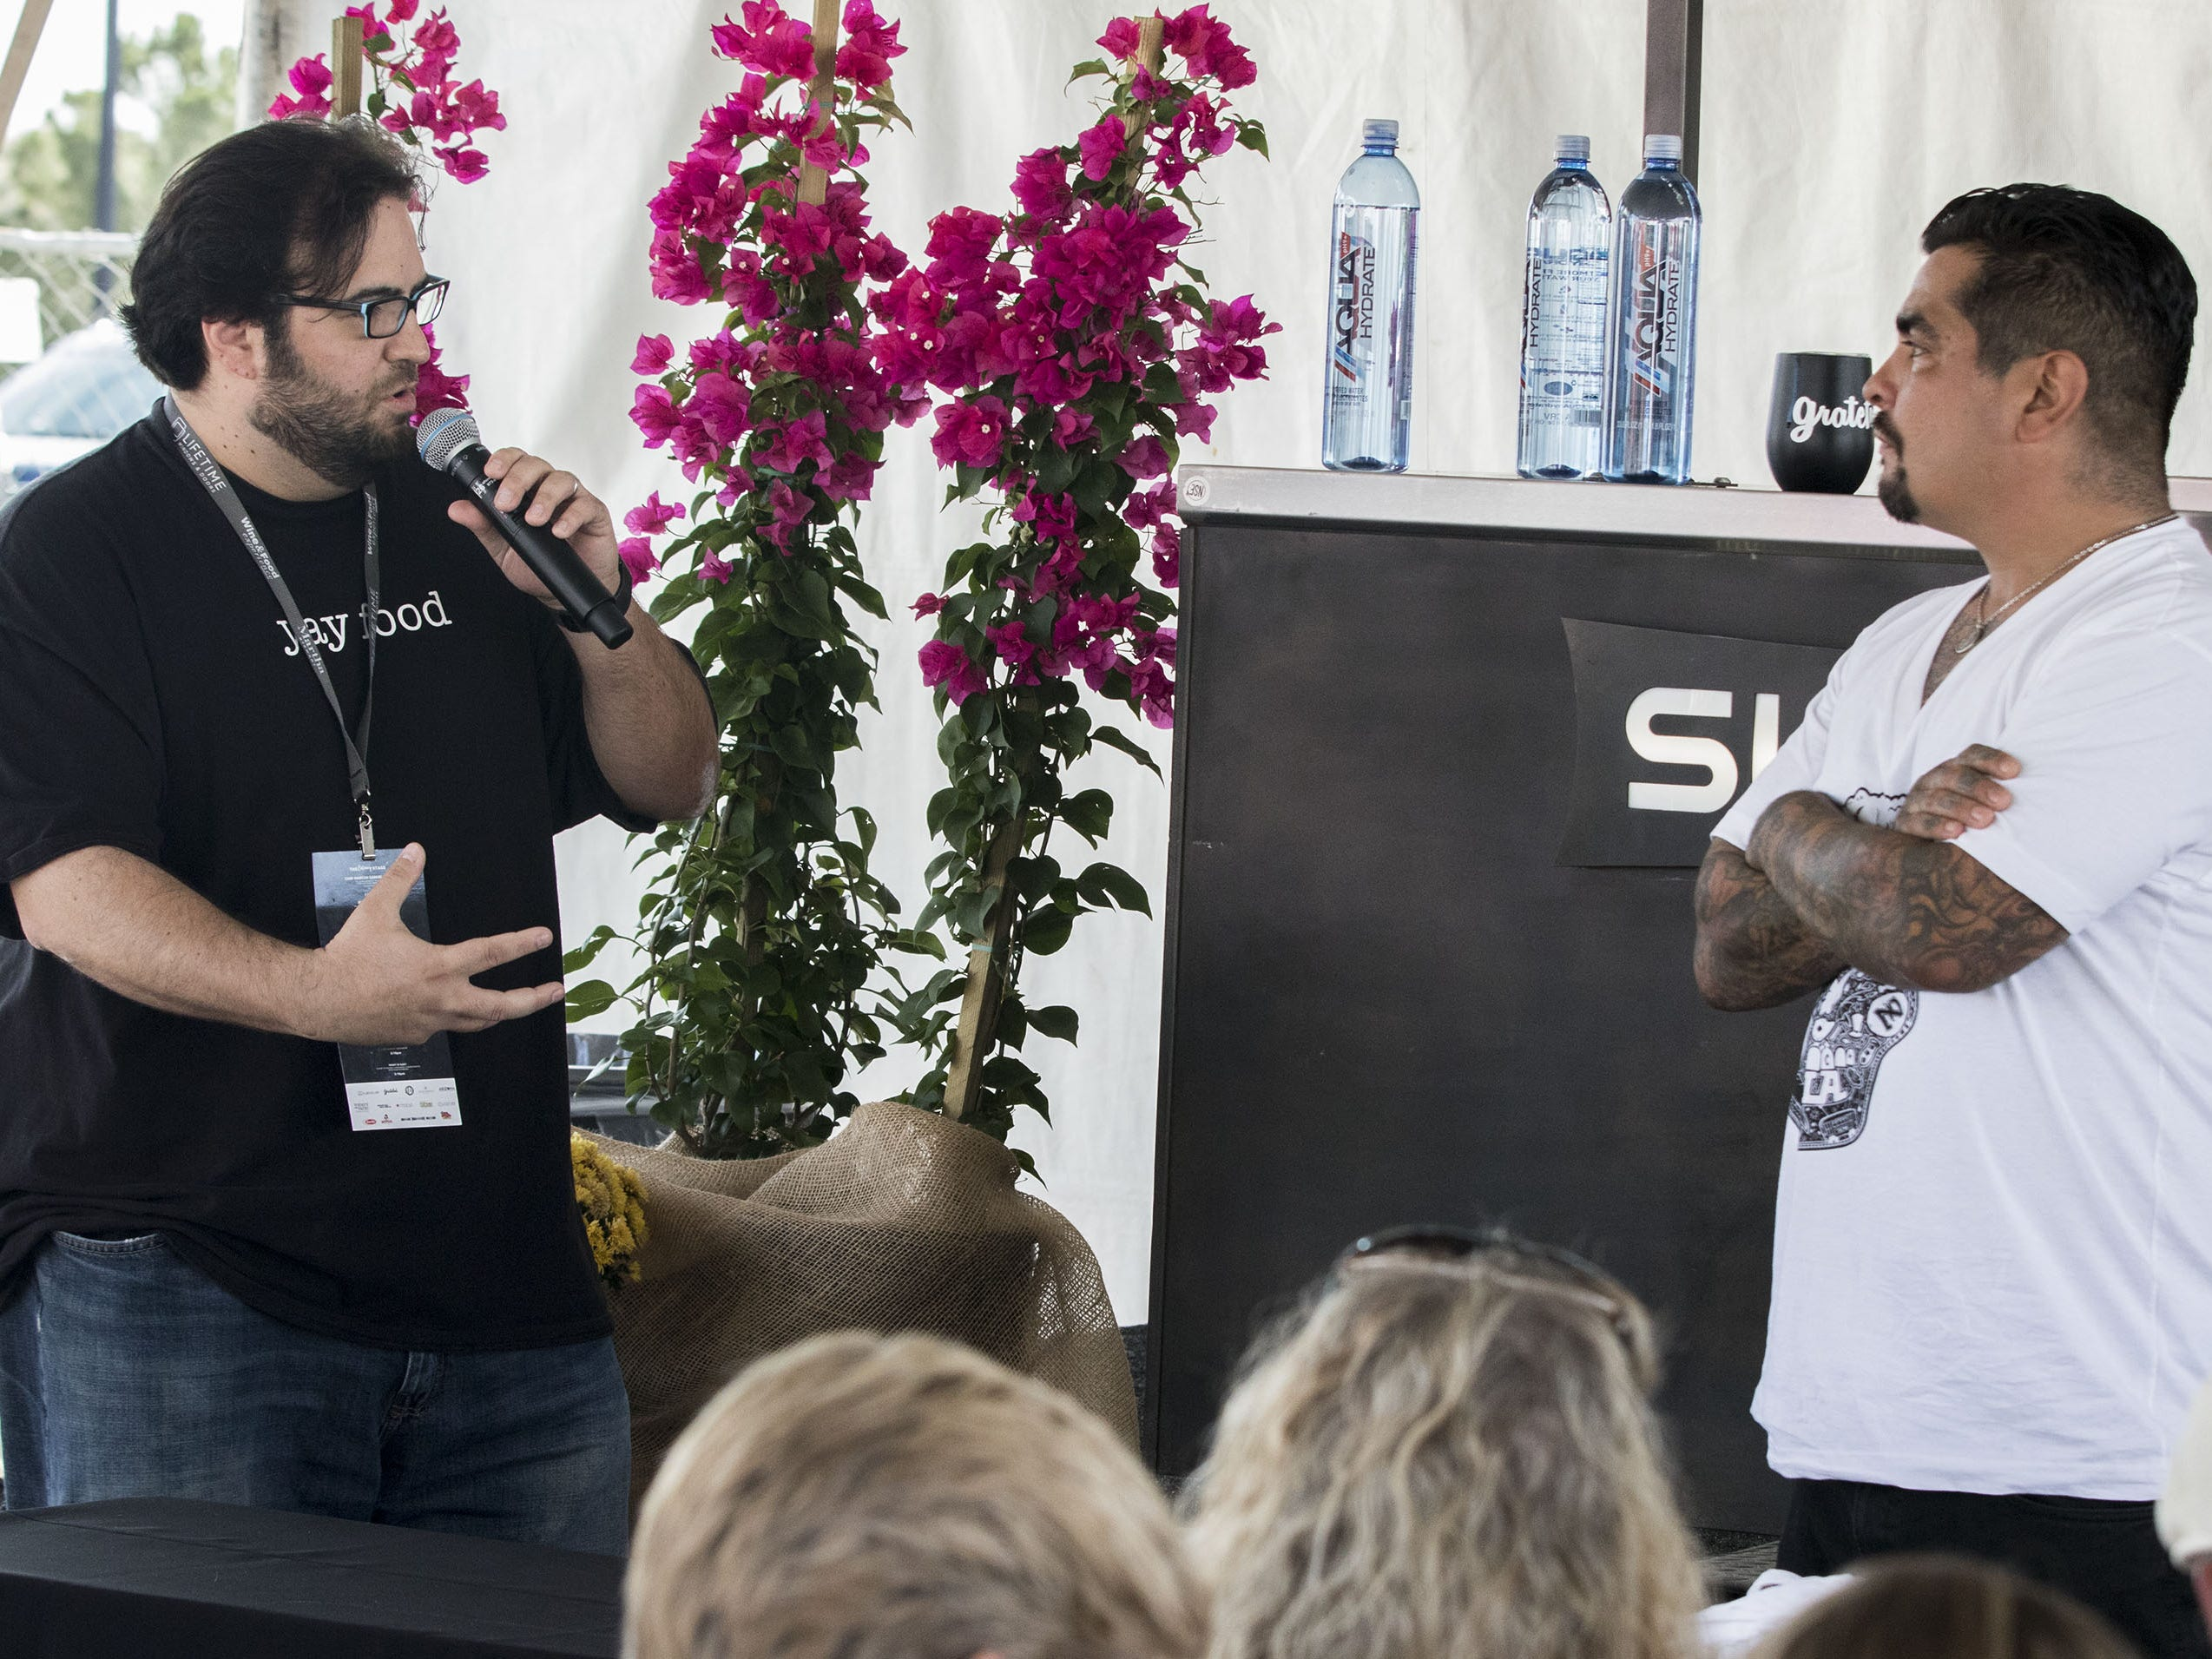 Arizona Republic dining critic Dominic Armato questions chef Aarón Sánchez during the azcentral Wine & Food Experience at WestWorld of Scottsdale, Sunday, Nov. 4, 2018.